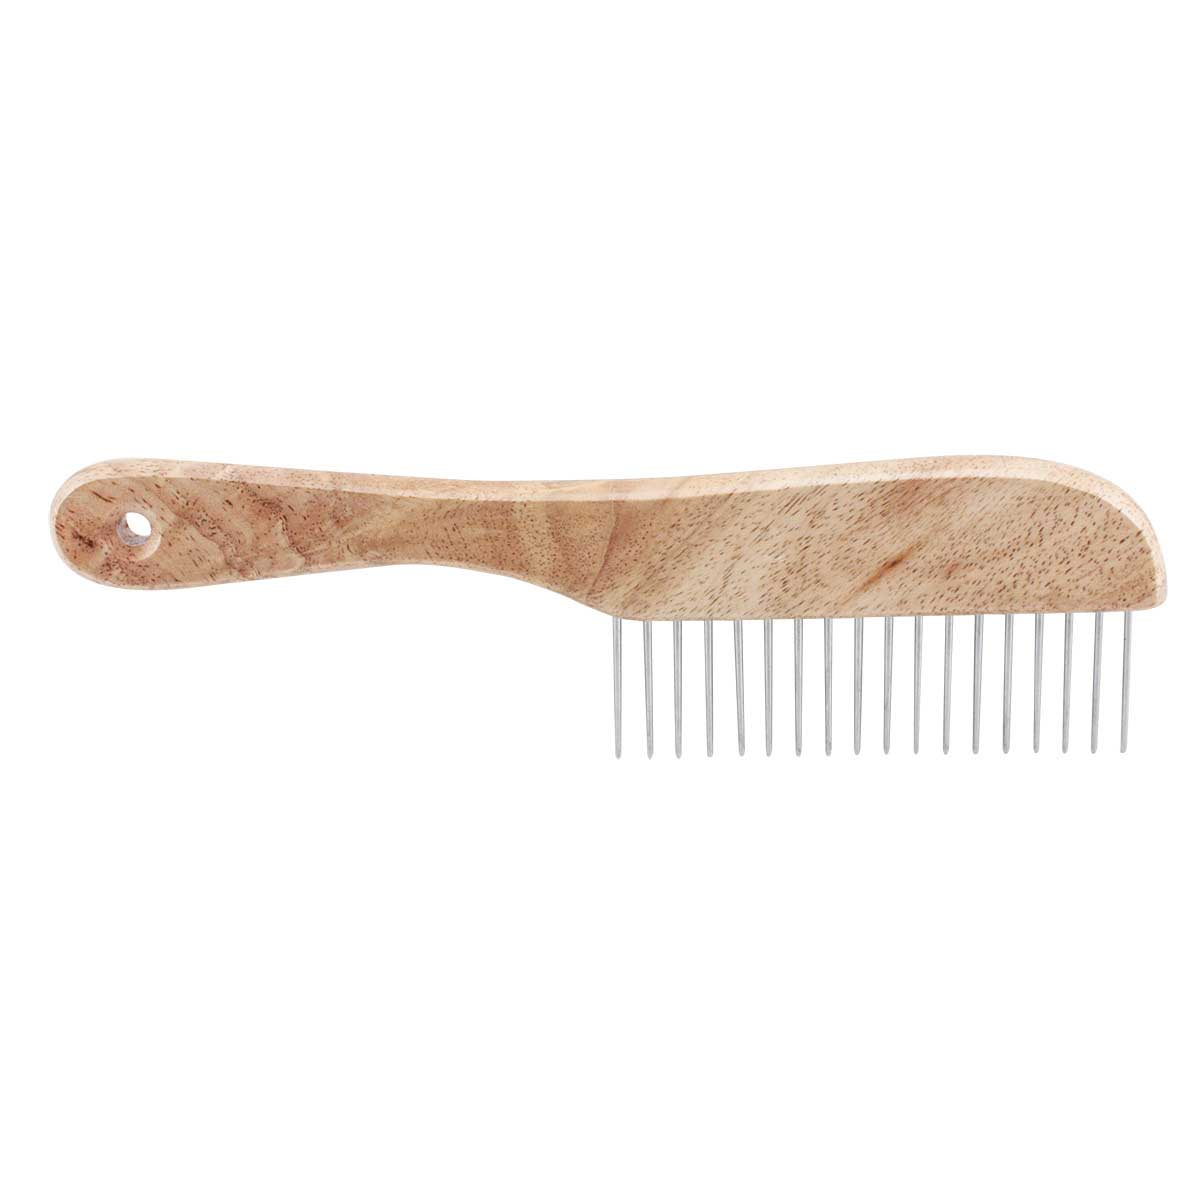 Paw Brothers Poodle Comb with Regular Teeth